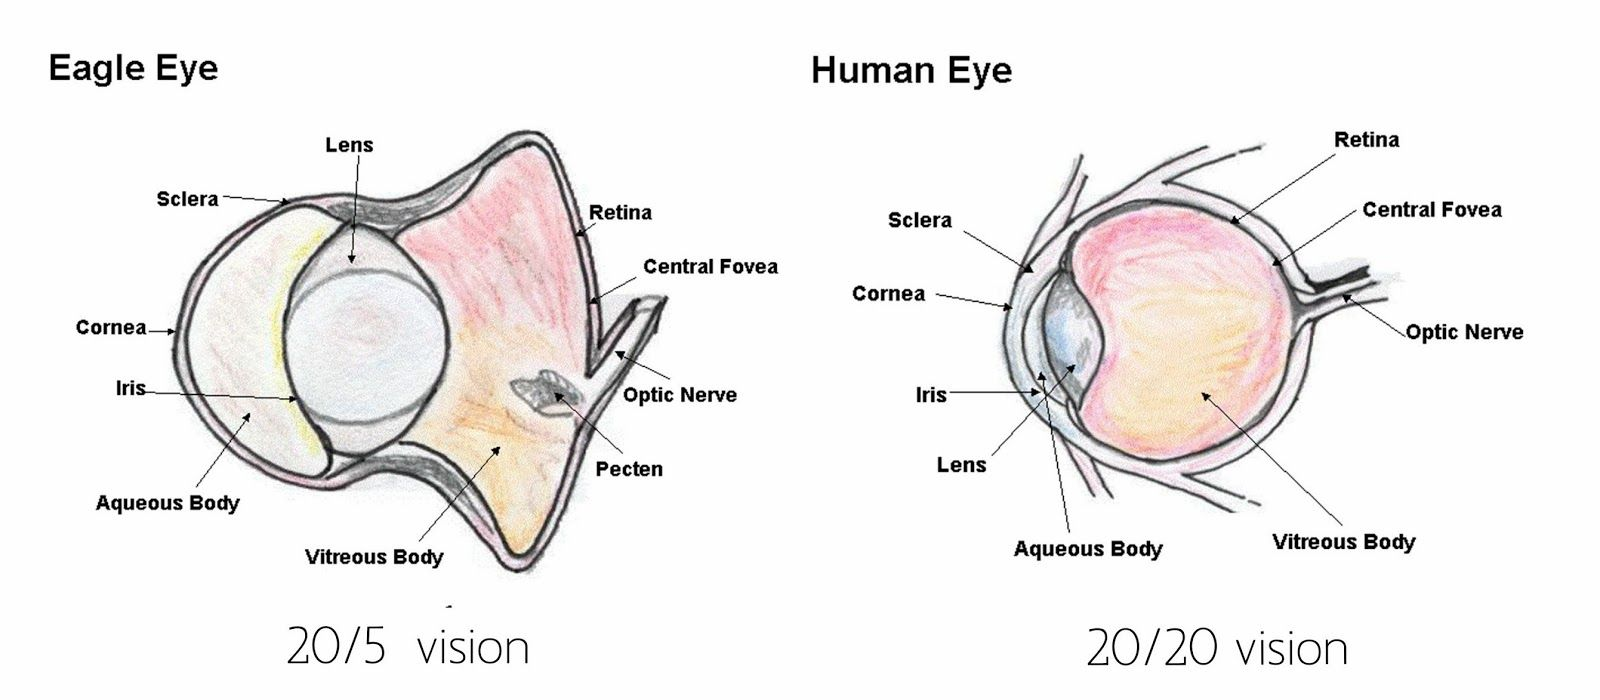 hight resolution of another important part of the eagle eye is the retina the retina is where